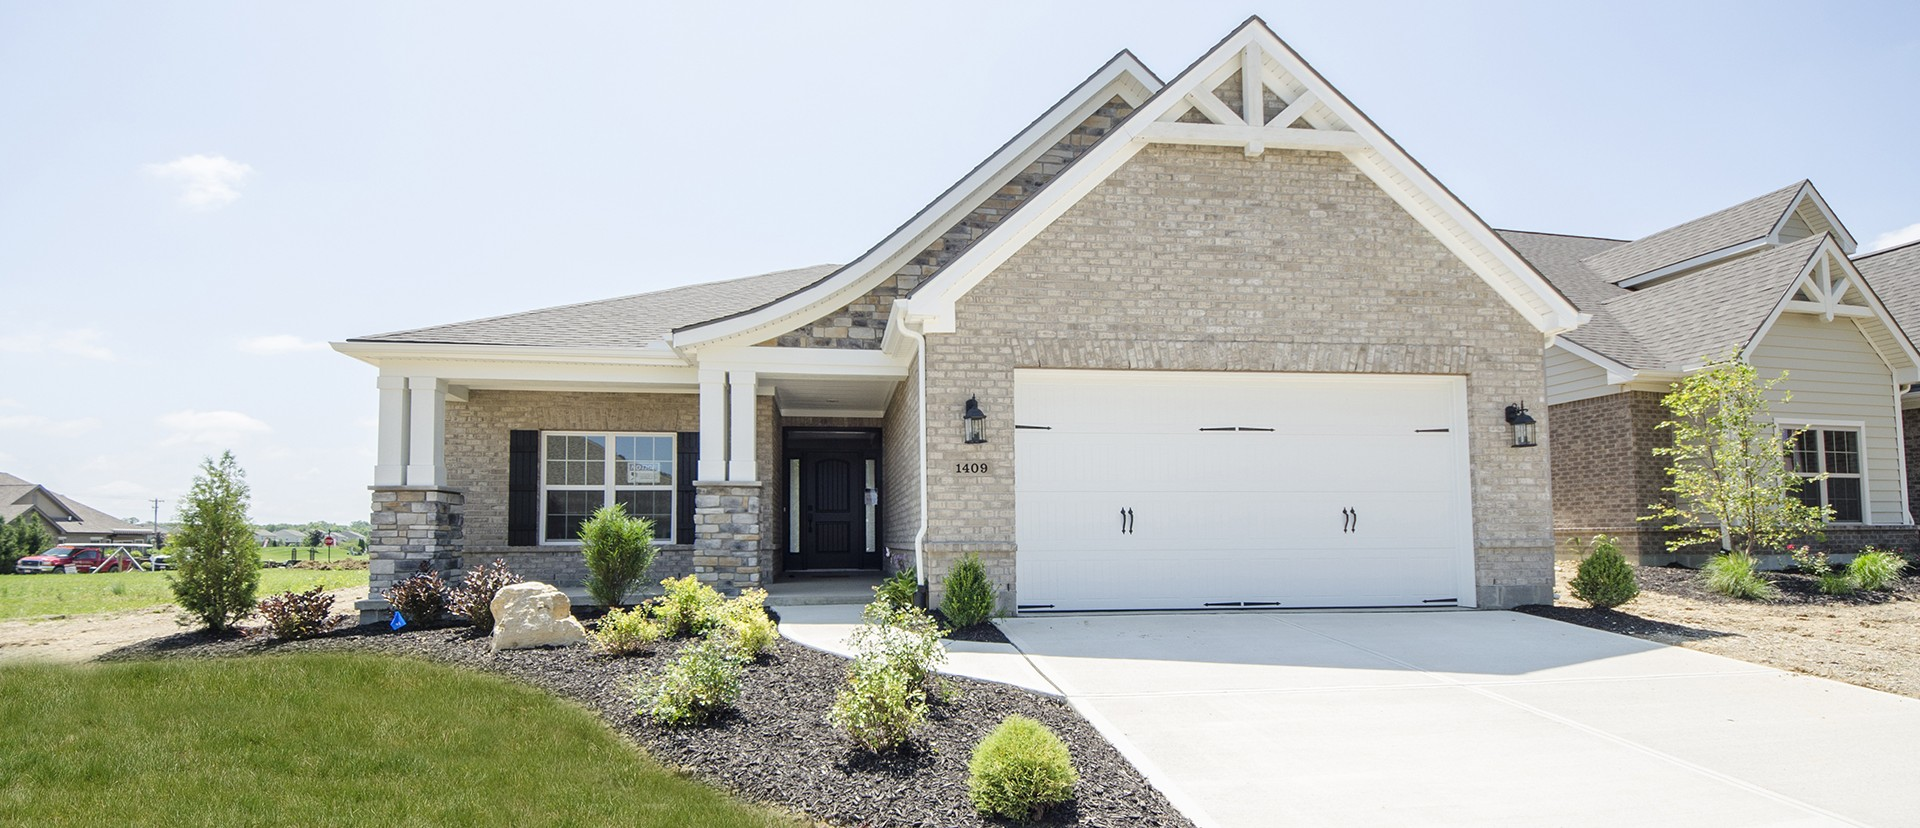 Custom exterior, of The Erica, by Design Homes.